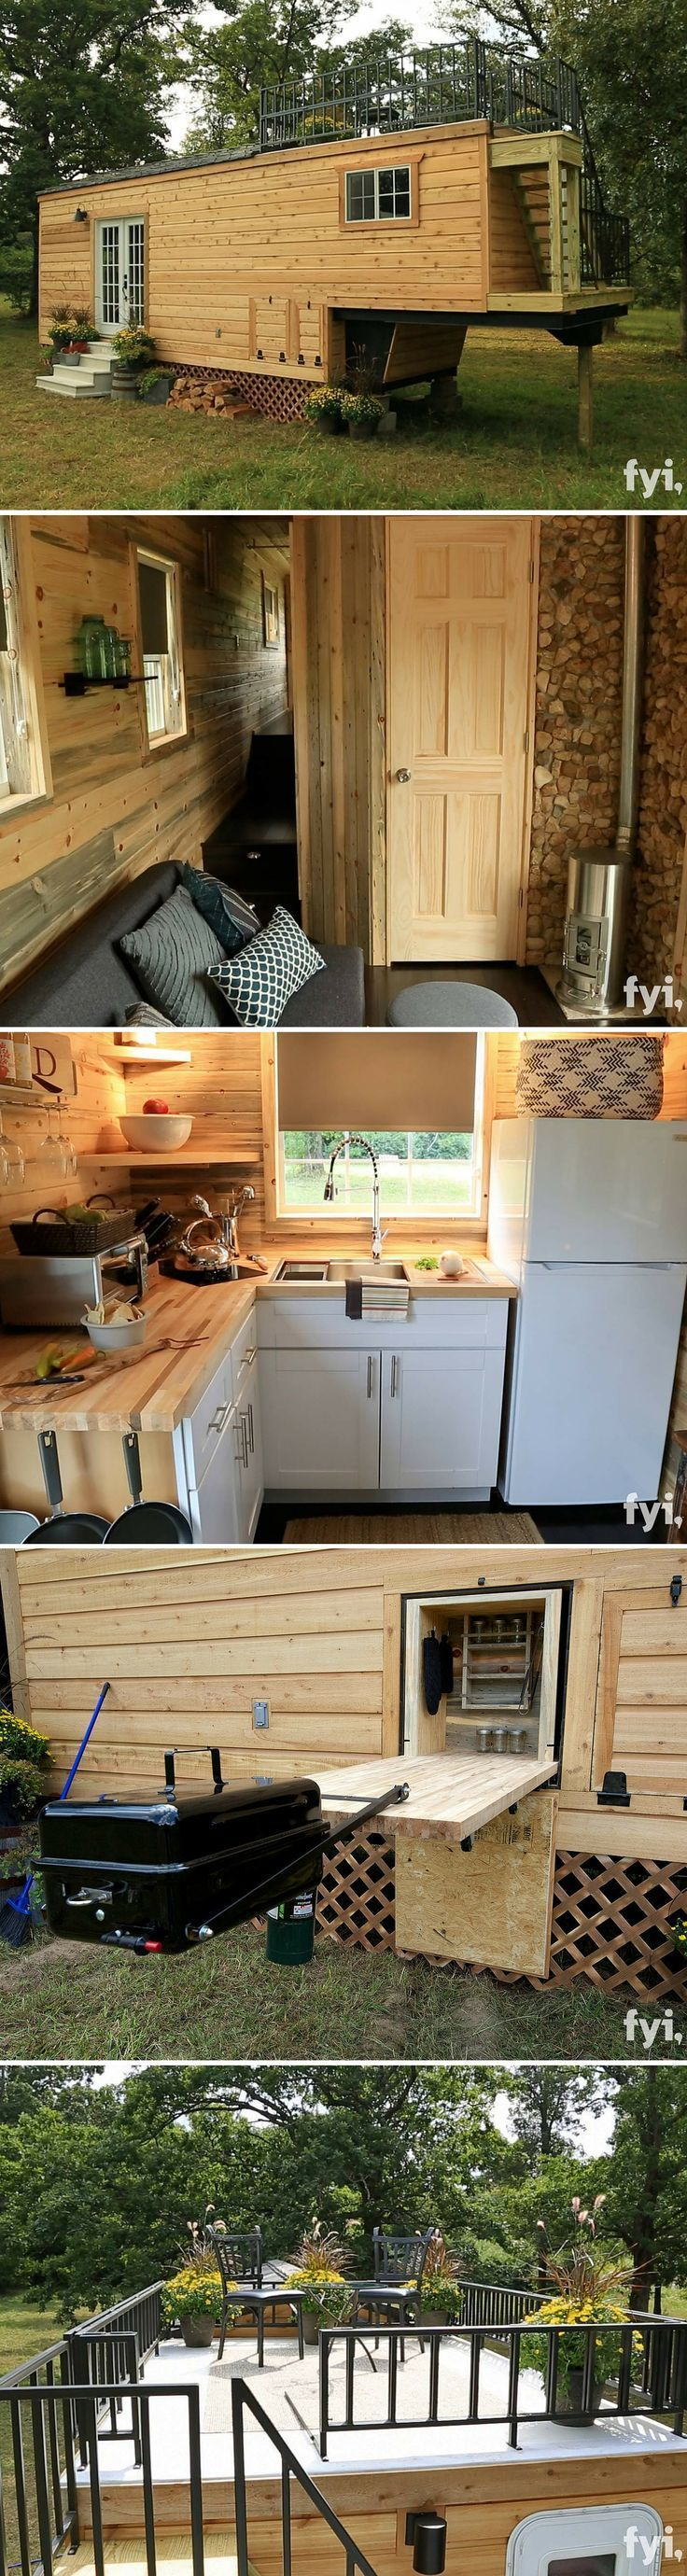 The Honeymoon Suite tiny house